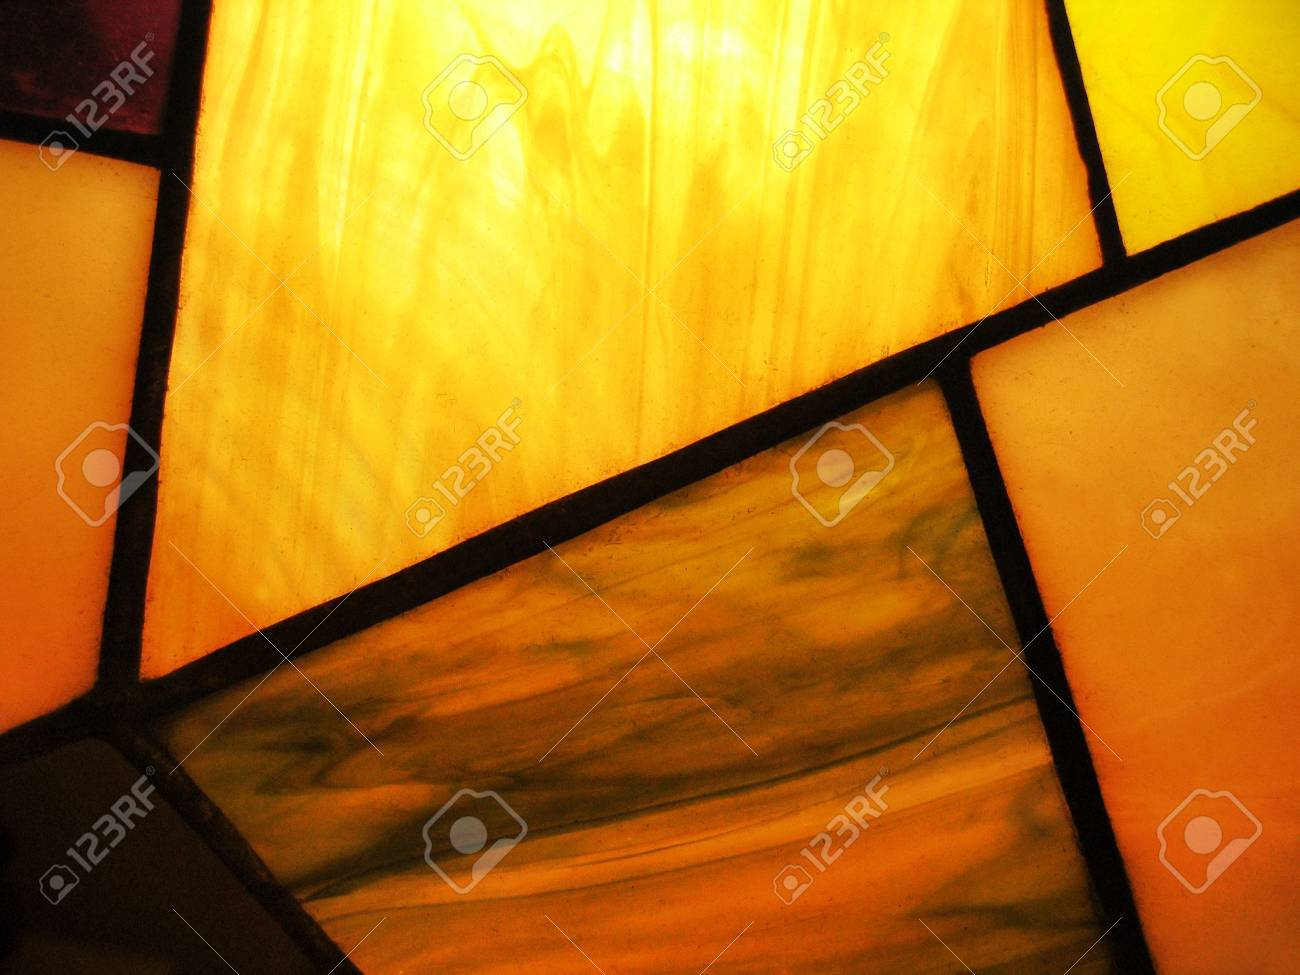 stained glass with back-lit - 7757311